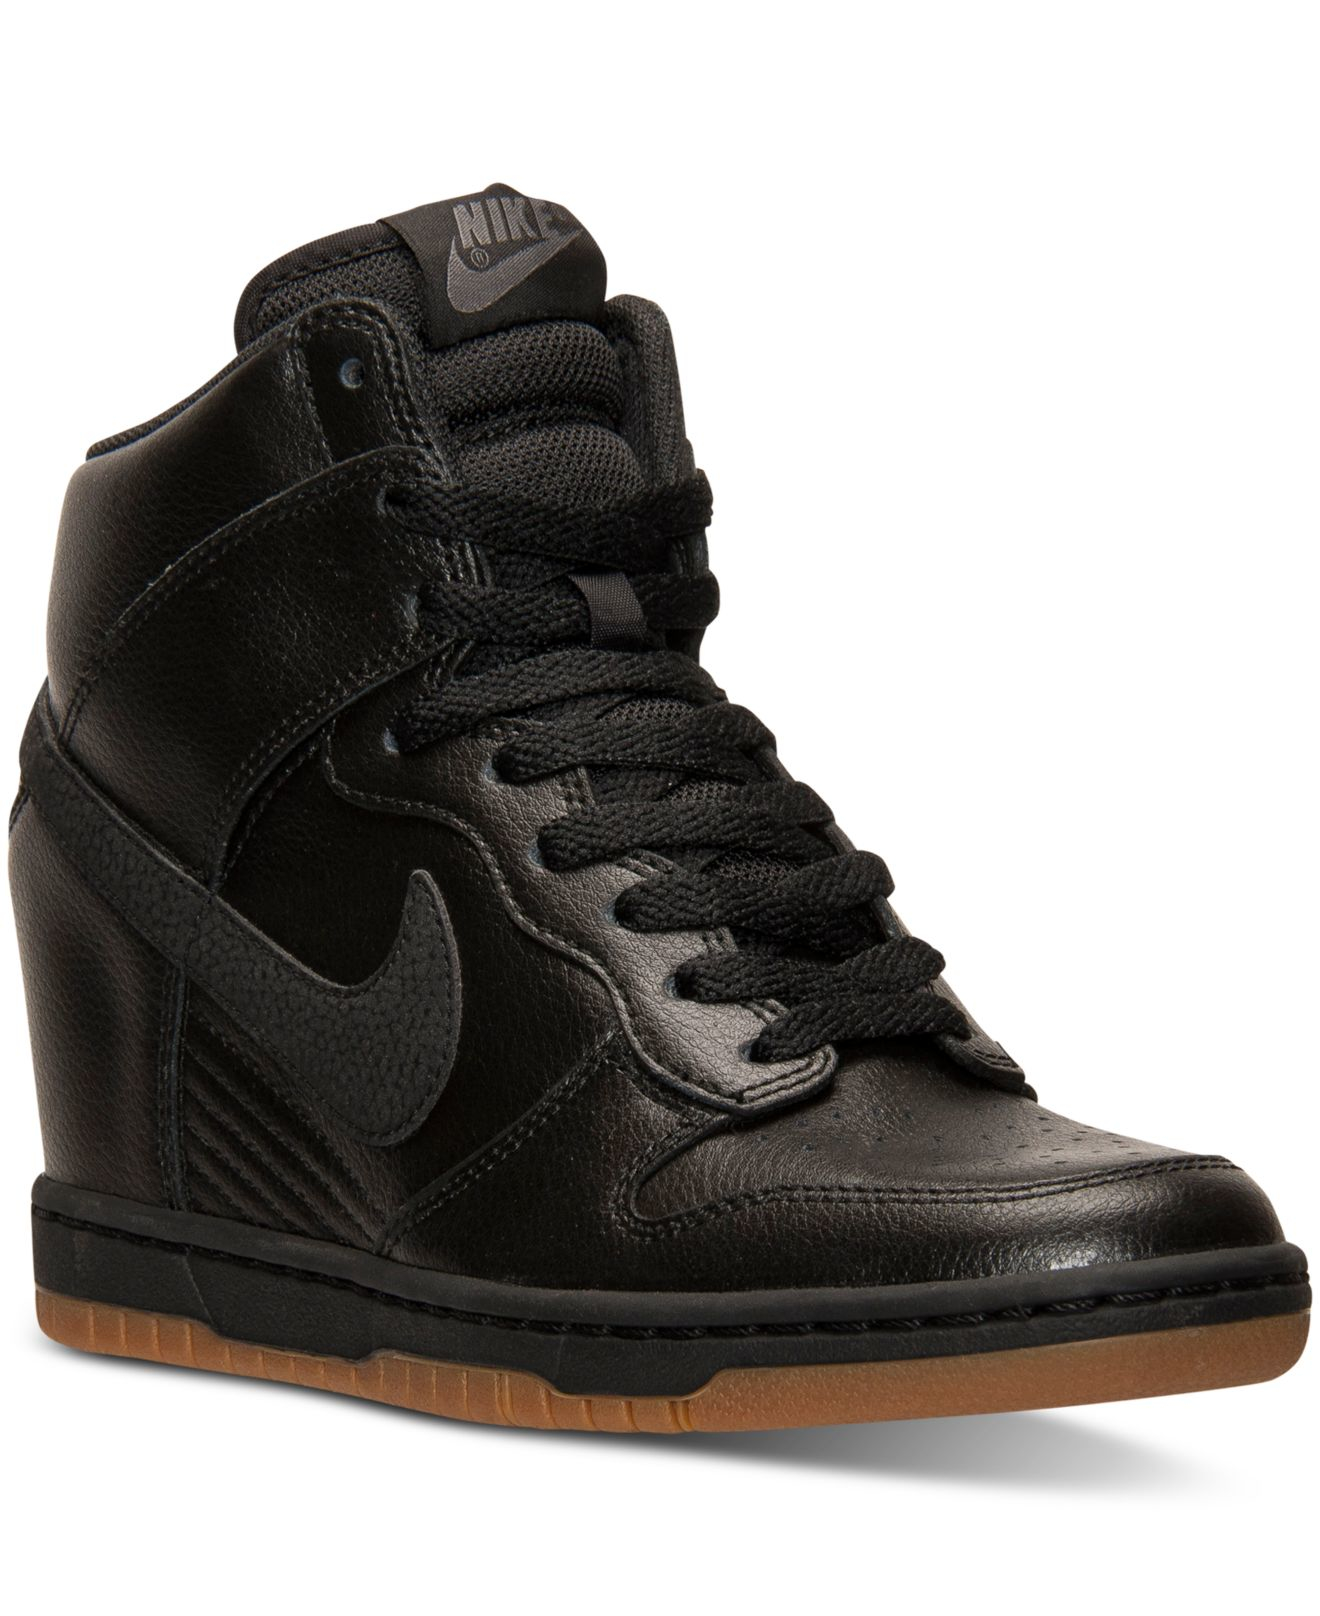 nike dunk sky hi essential leather sneakers in black lyst. Black Bedroom Furniture Sets. Home Design Ideas